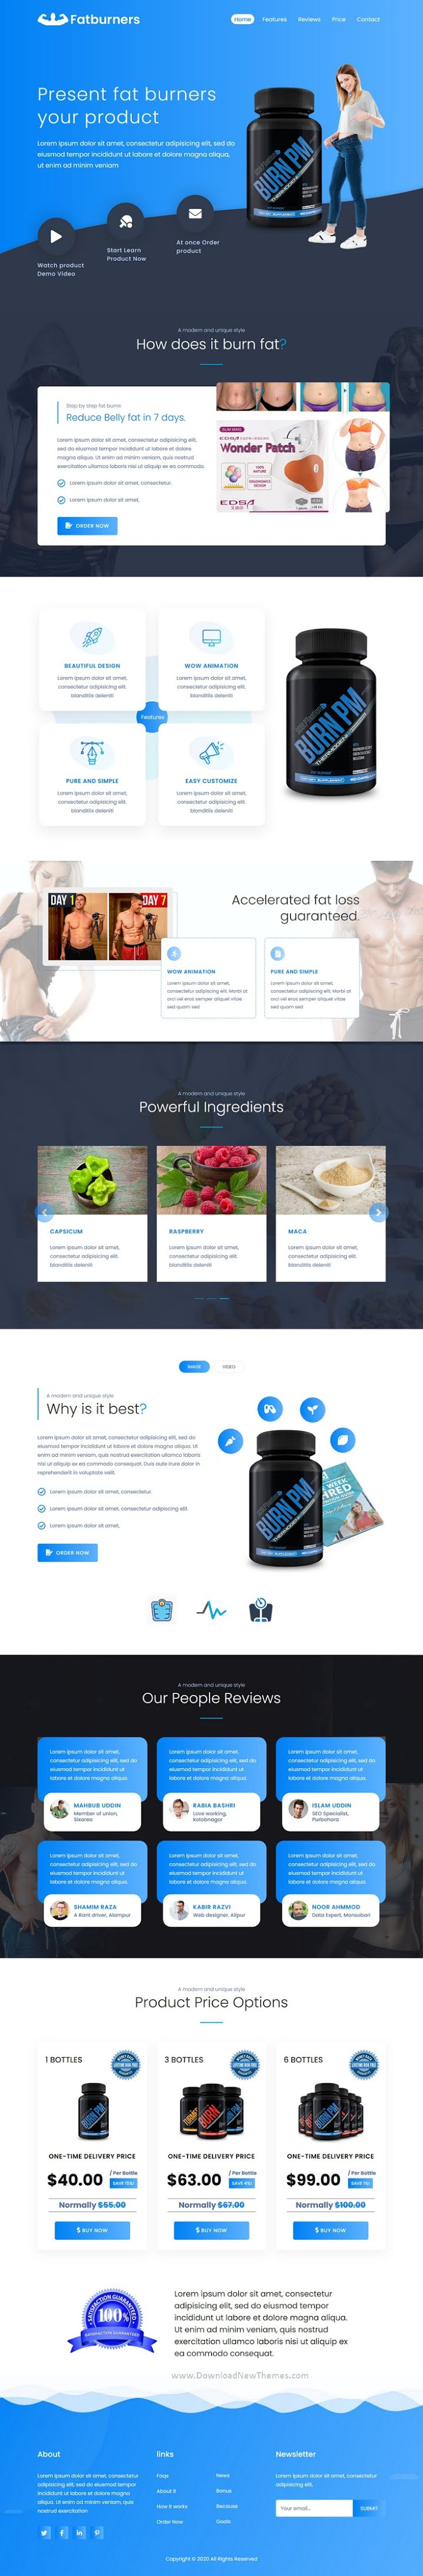 Best Health Weight Loss Supplement Landing Page